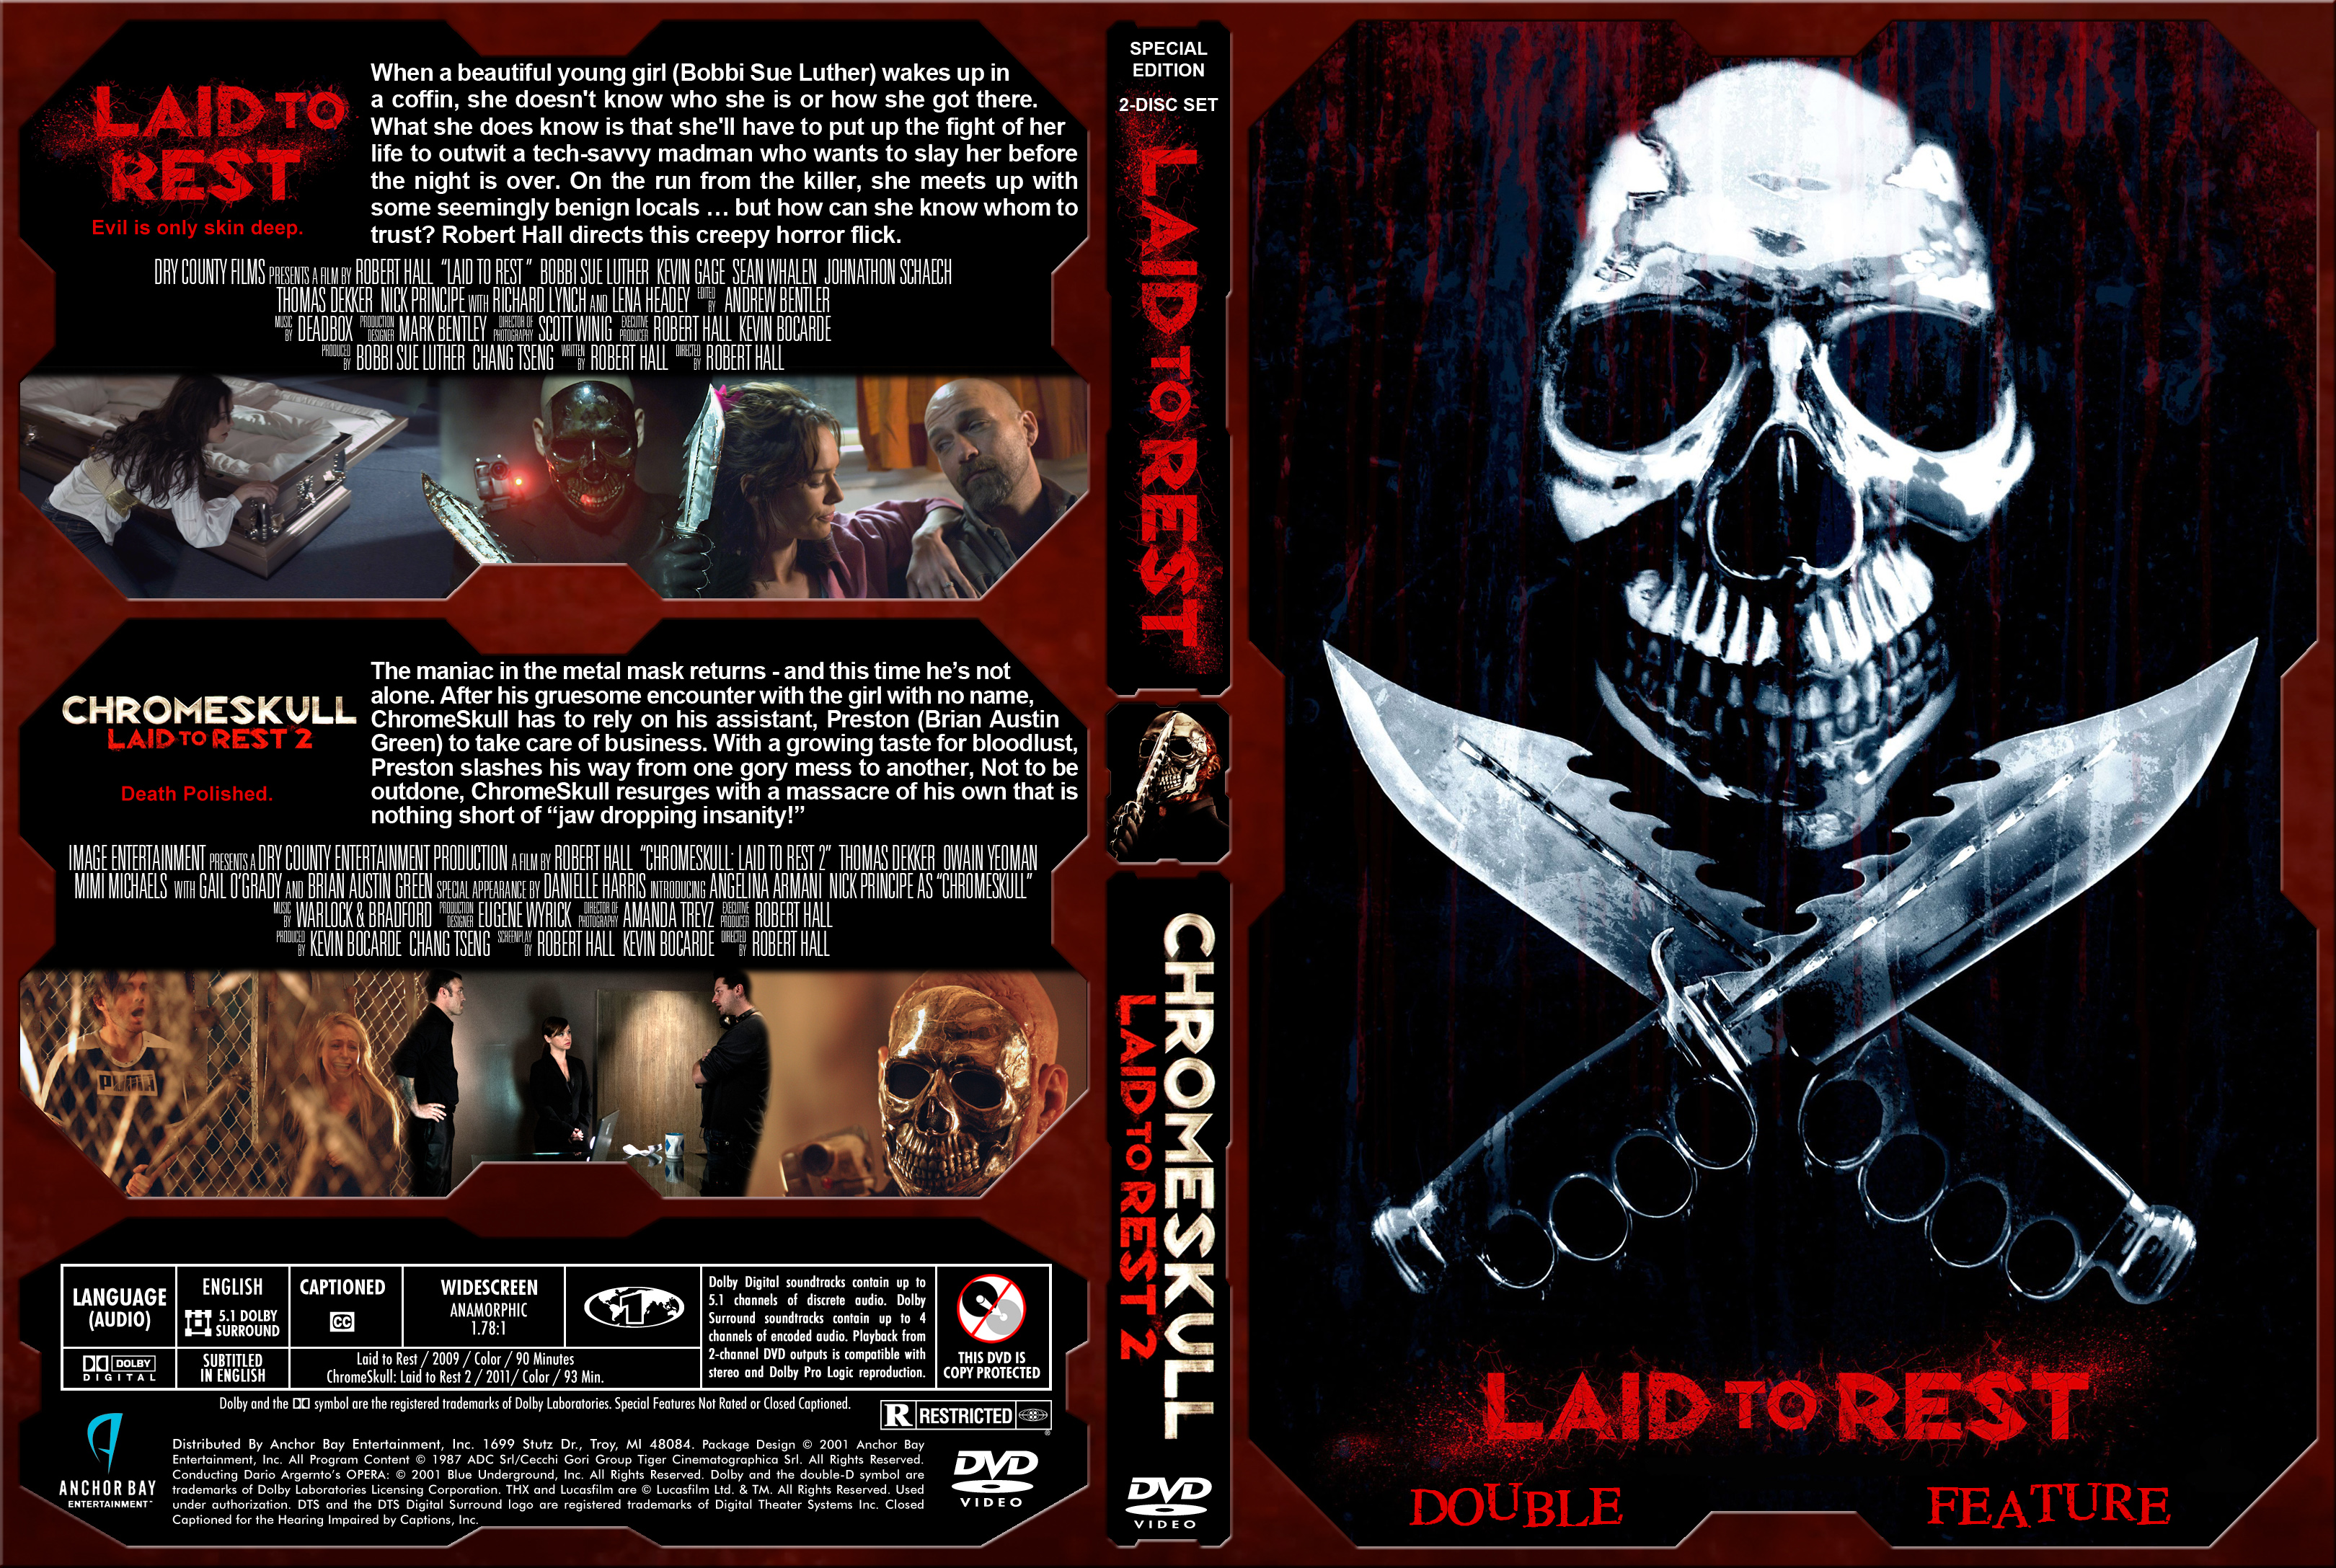 laid to rest double dvd covers cover century over 500 000